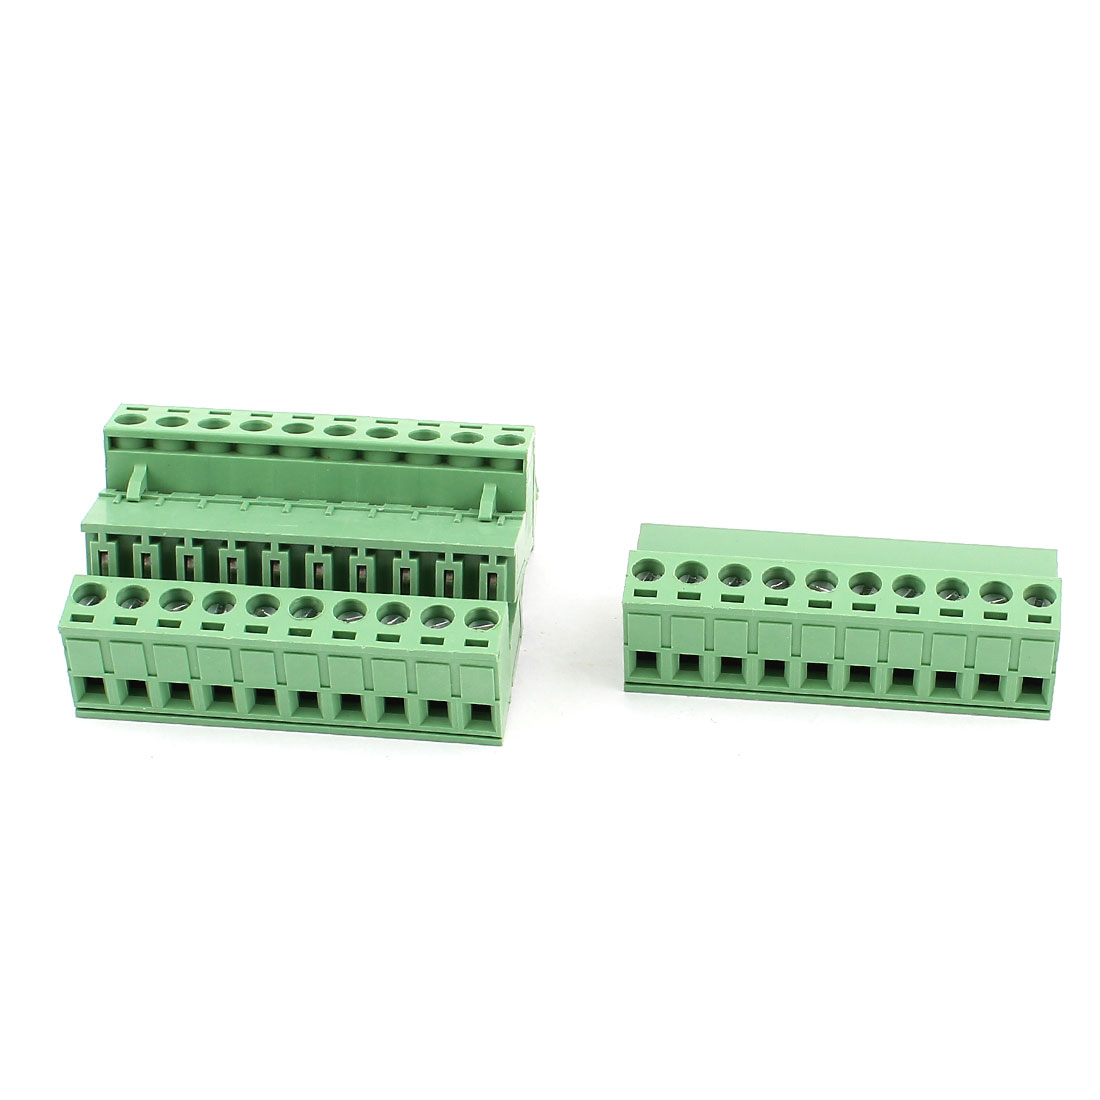 4 Pcs AC 300V 10A 10 Pins PCB Terminal Block Connector 5.08mm Pitch Green